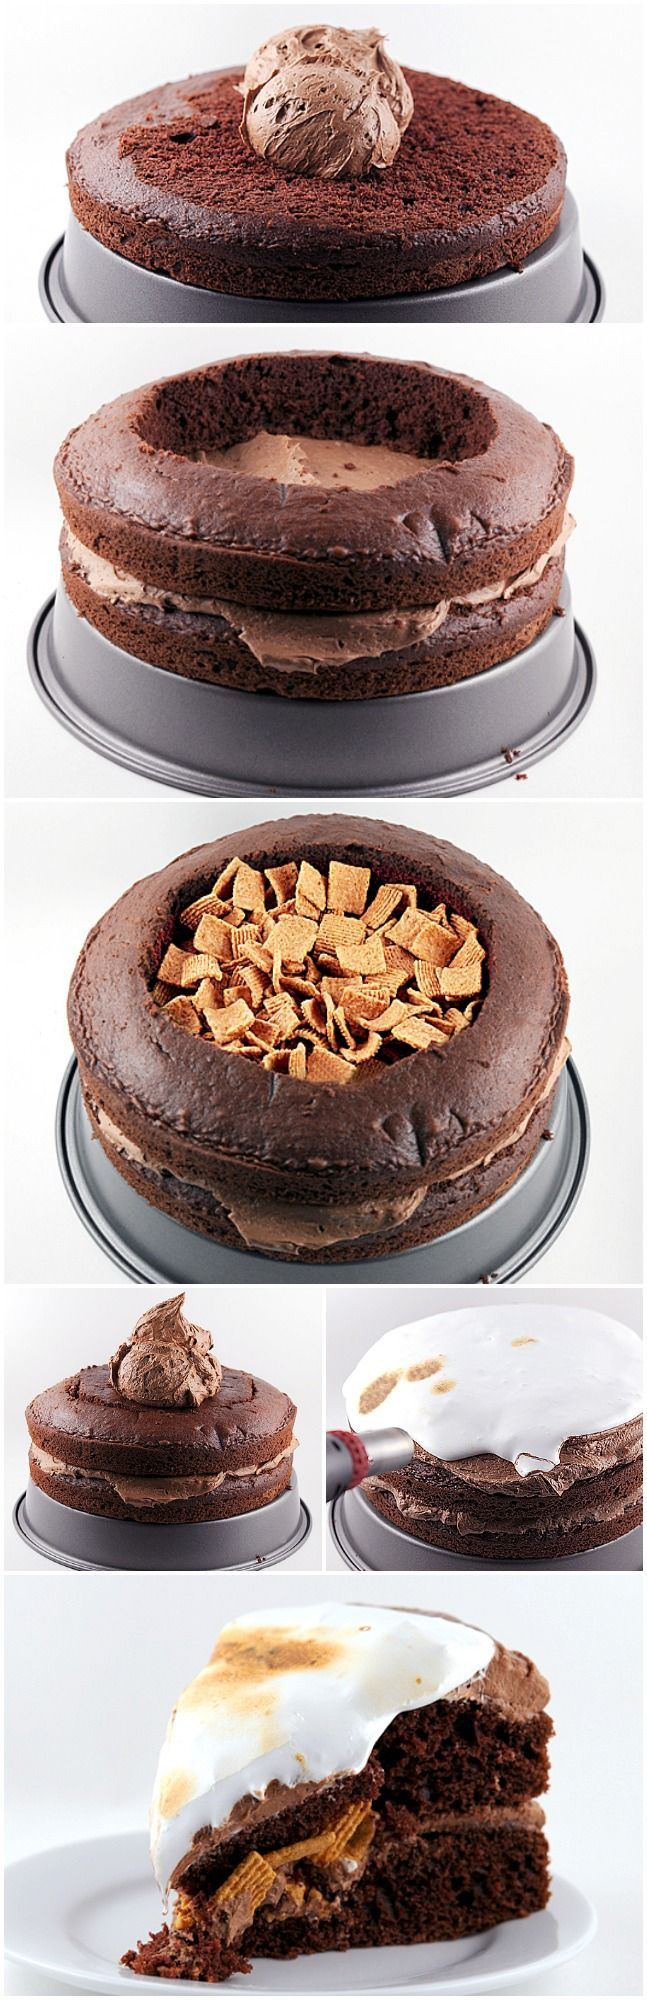 S'more Cake... how creative! By Baker Peabody via Tablespoon.